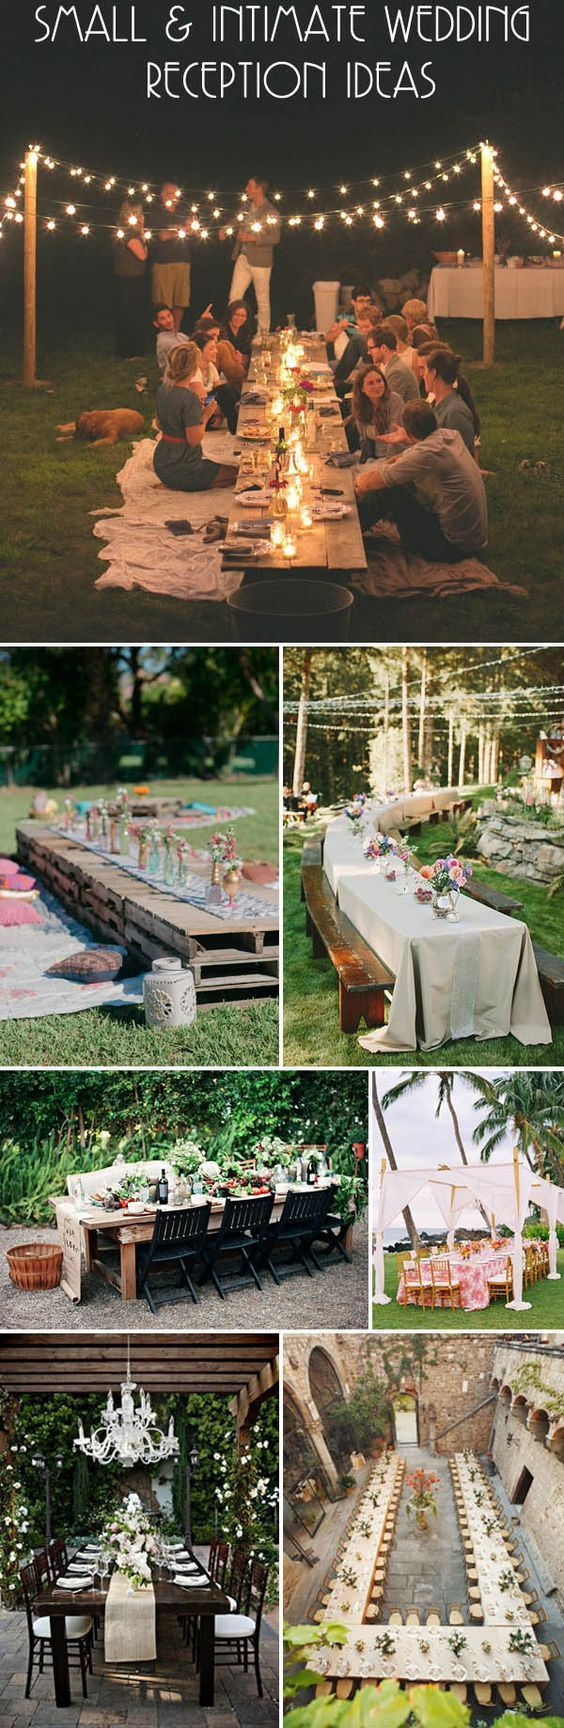 small and intimate wedding long table reception ideas